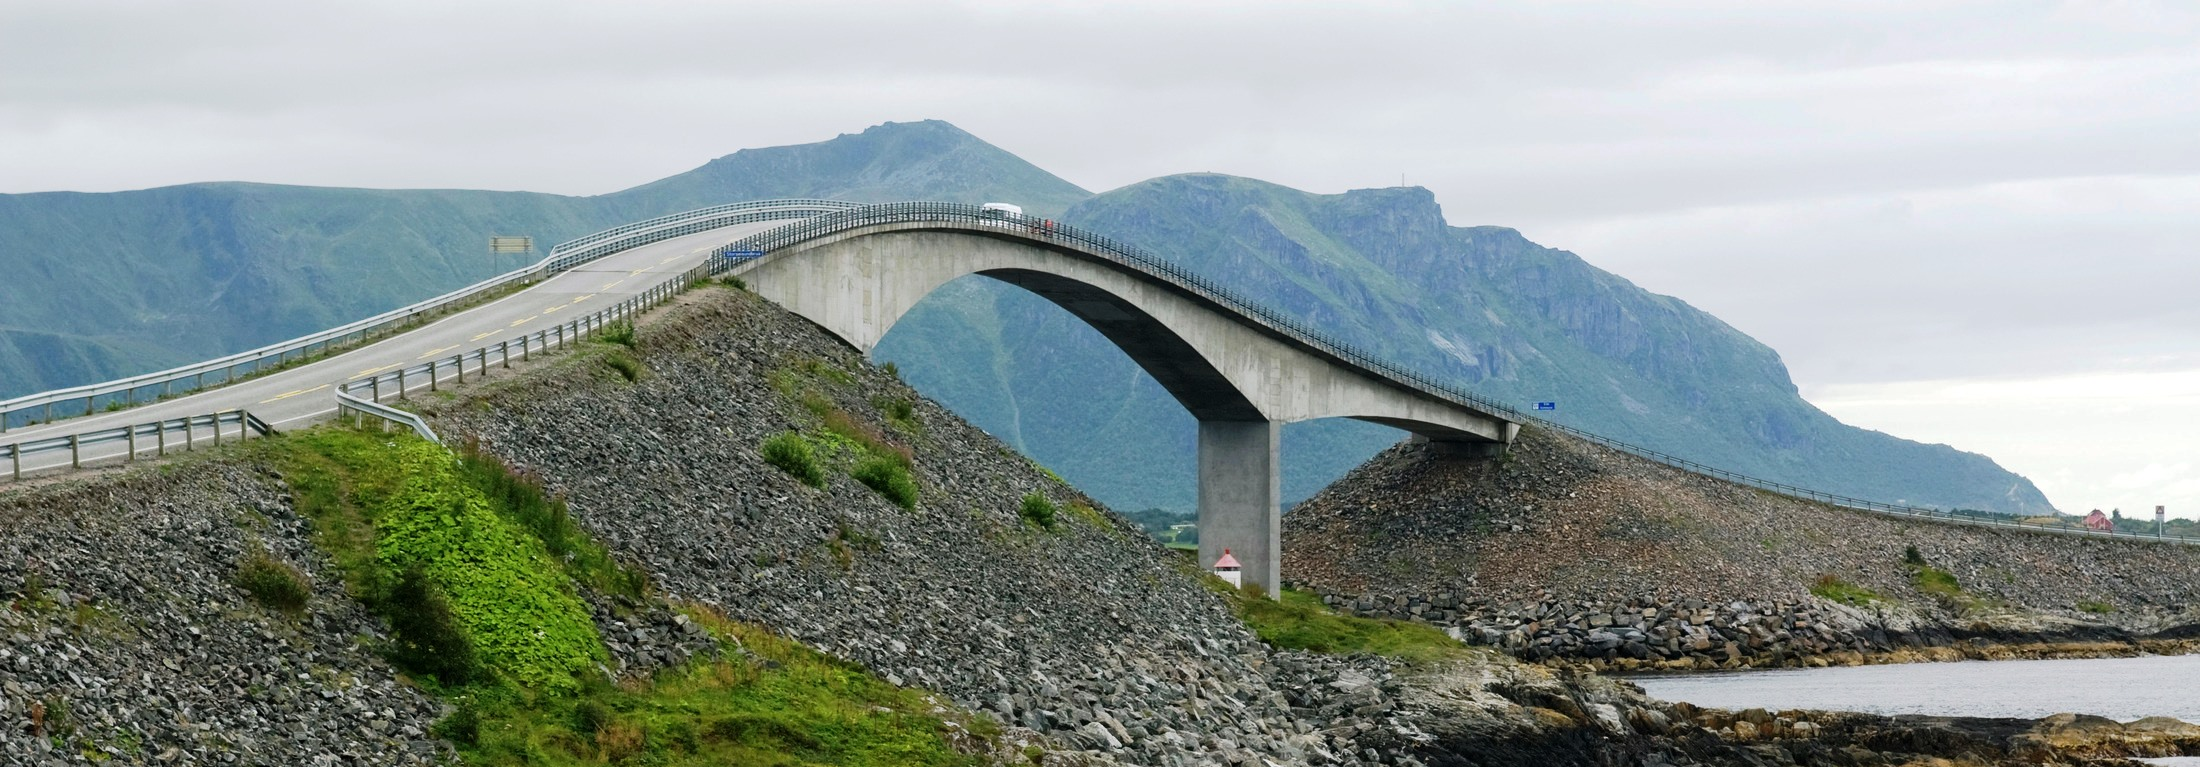 The-Atlantic-Road-More-and-Romsdal-012008-99-0592_2200